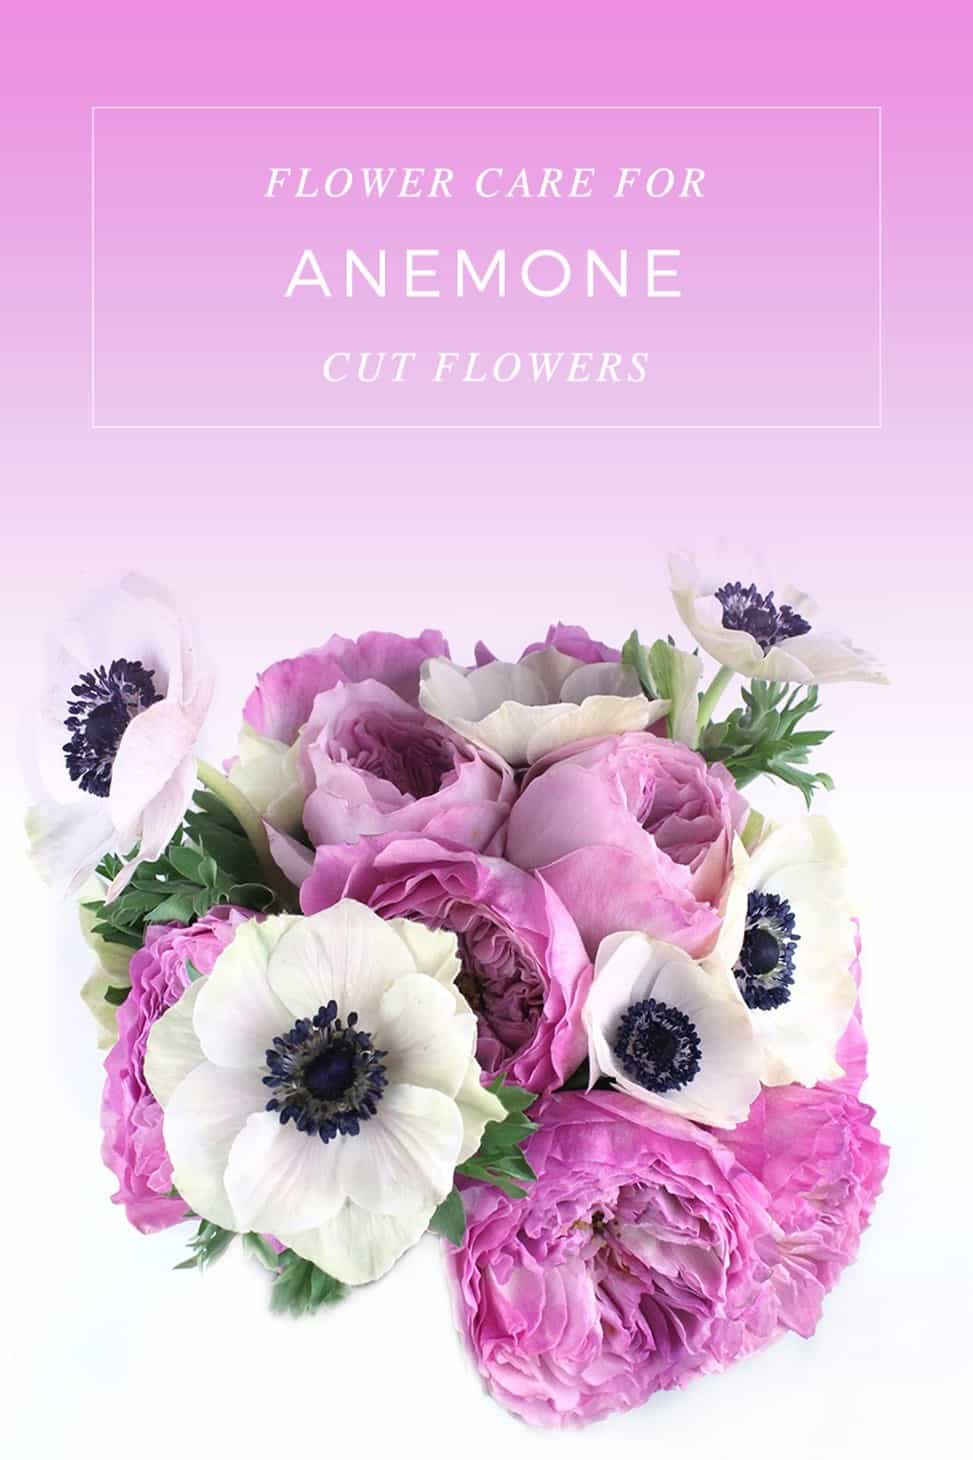 Anemone cut flowers, anemone care, flower care anemone, make your anemone last longer, care tips